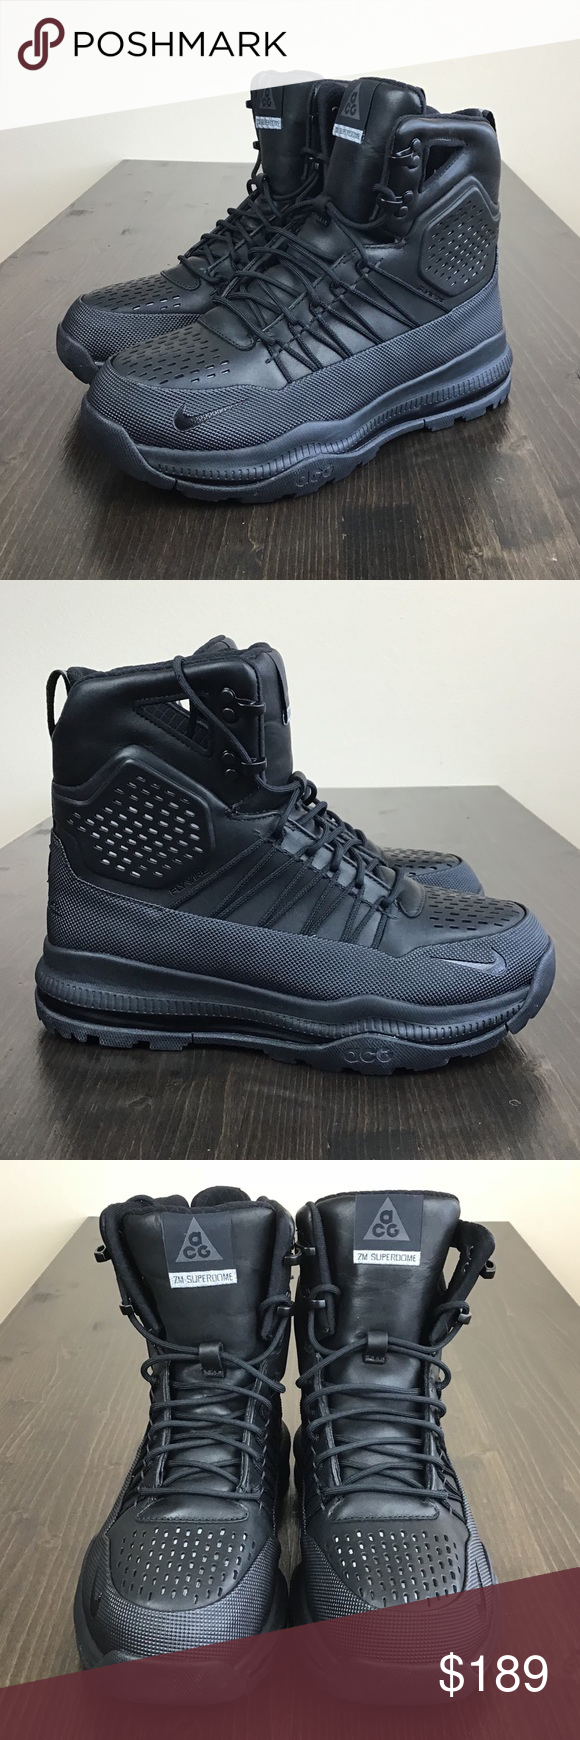 23e557f425a Nike Zoom Superdome ACG Boots Triple Black Brand New without Box ...